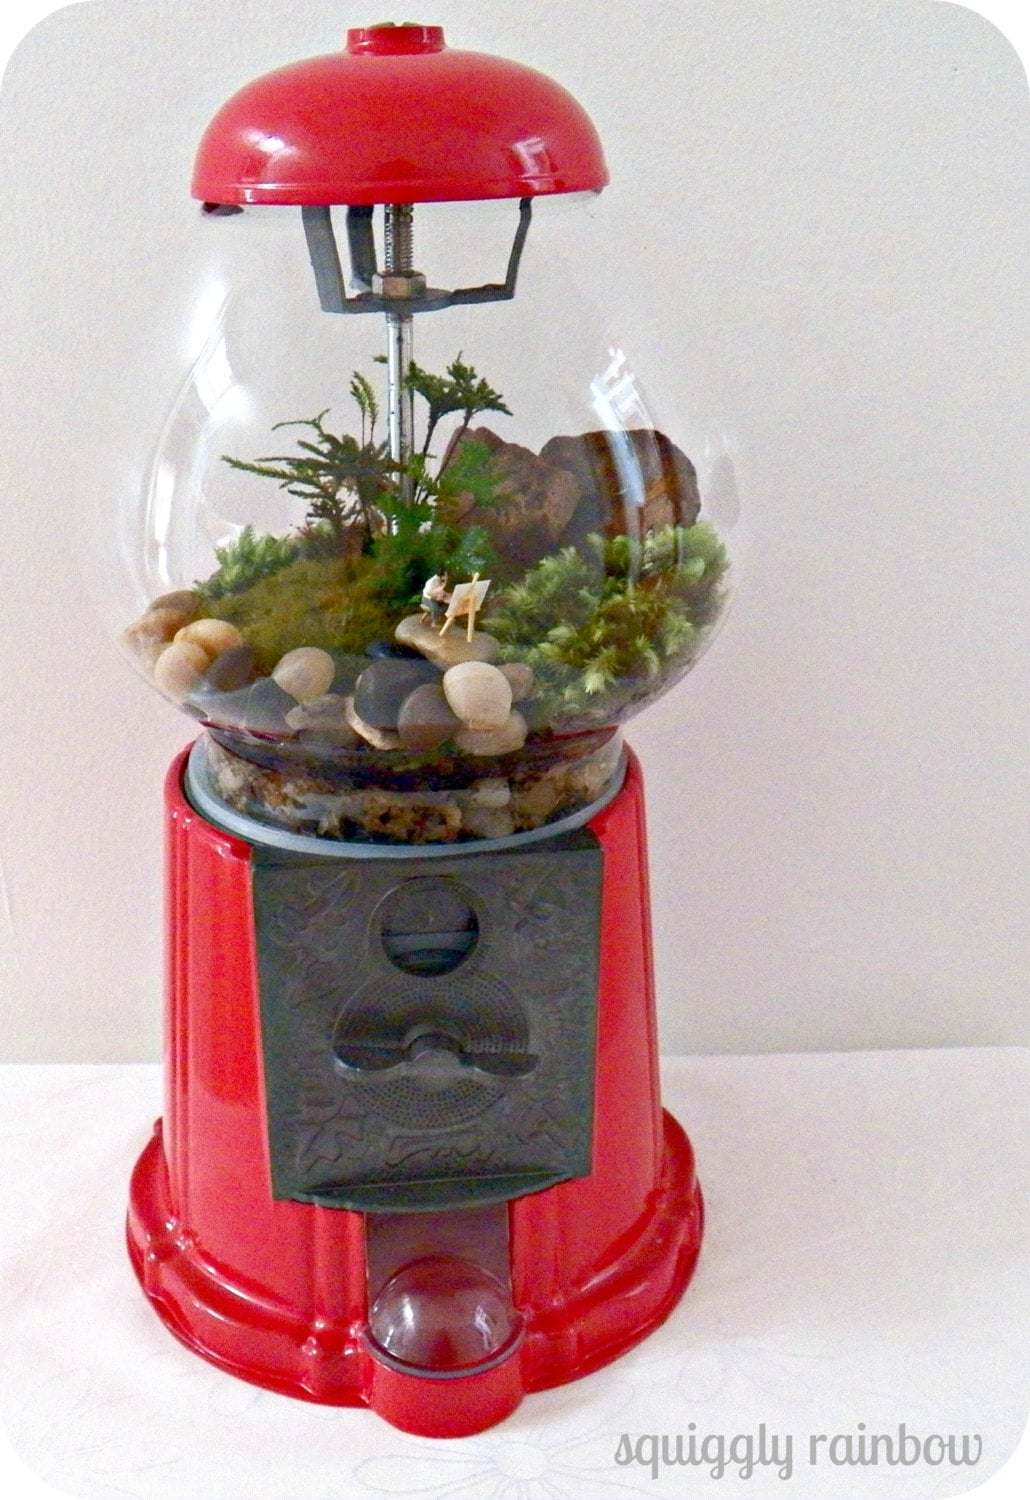 terrarium gumball machine quirky australian squiggly rainbow etsy mini garden